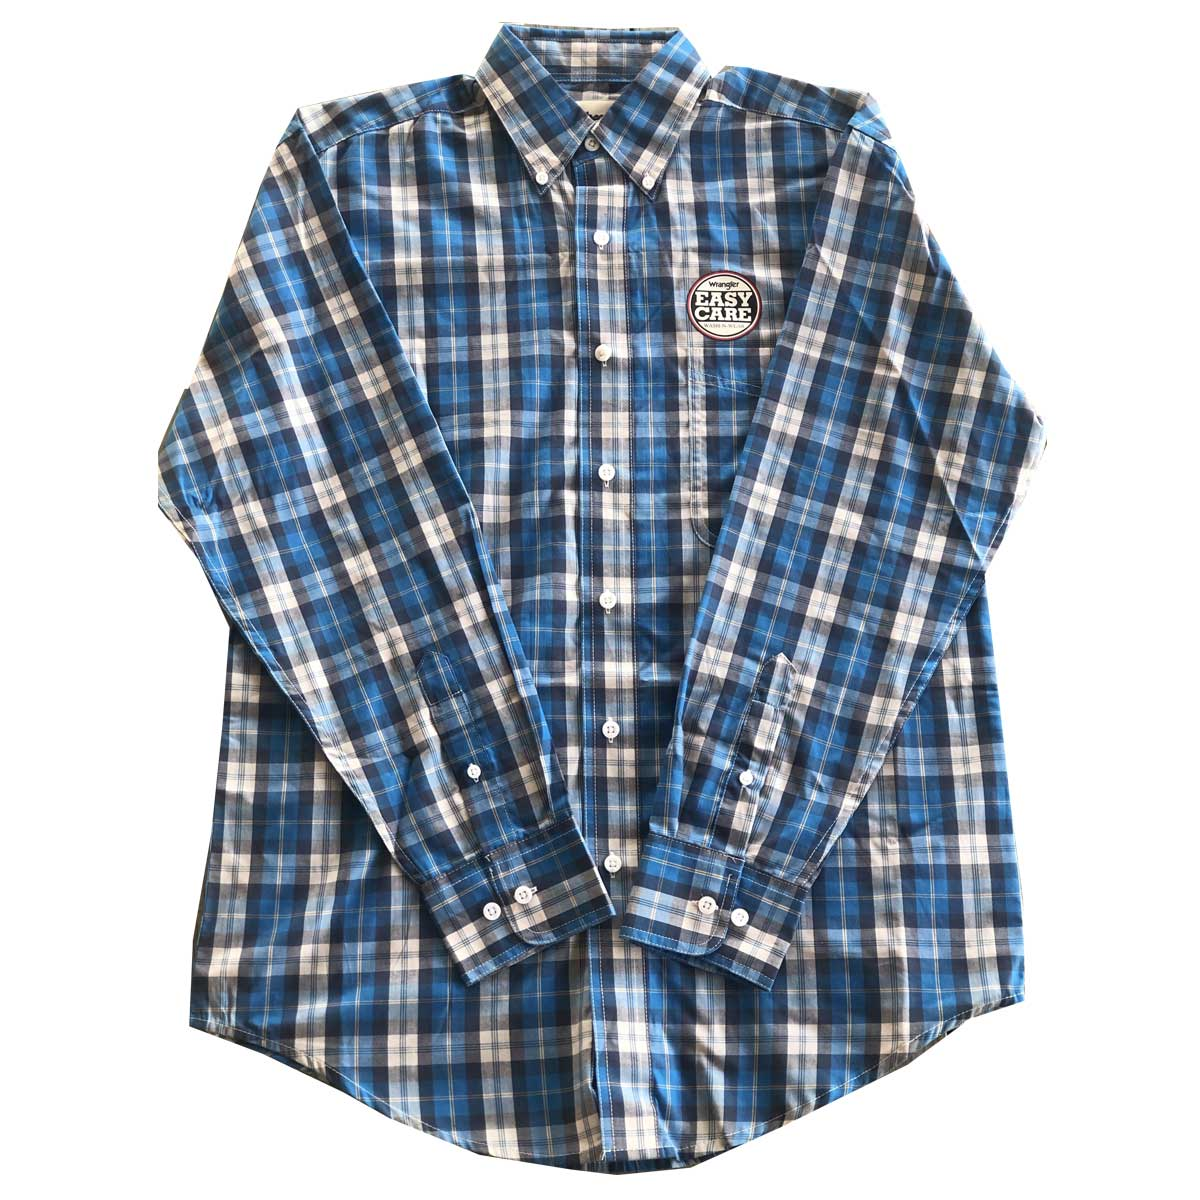 Wrangler Men's Long Sleeve Button Down One Pocket Plaid Shirt - Dark Blue Tan